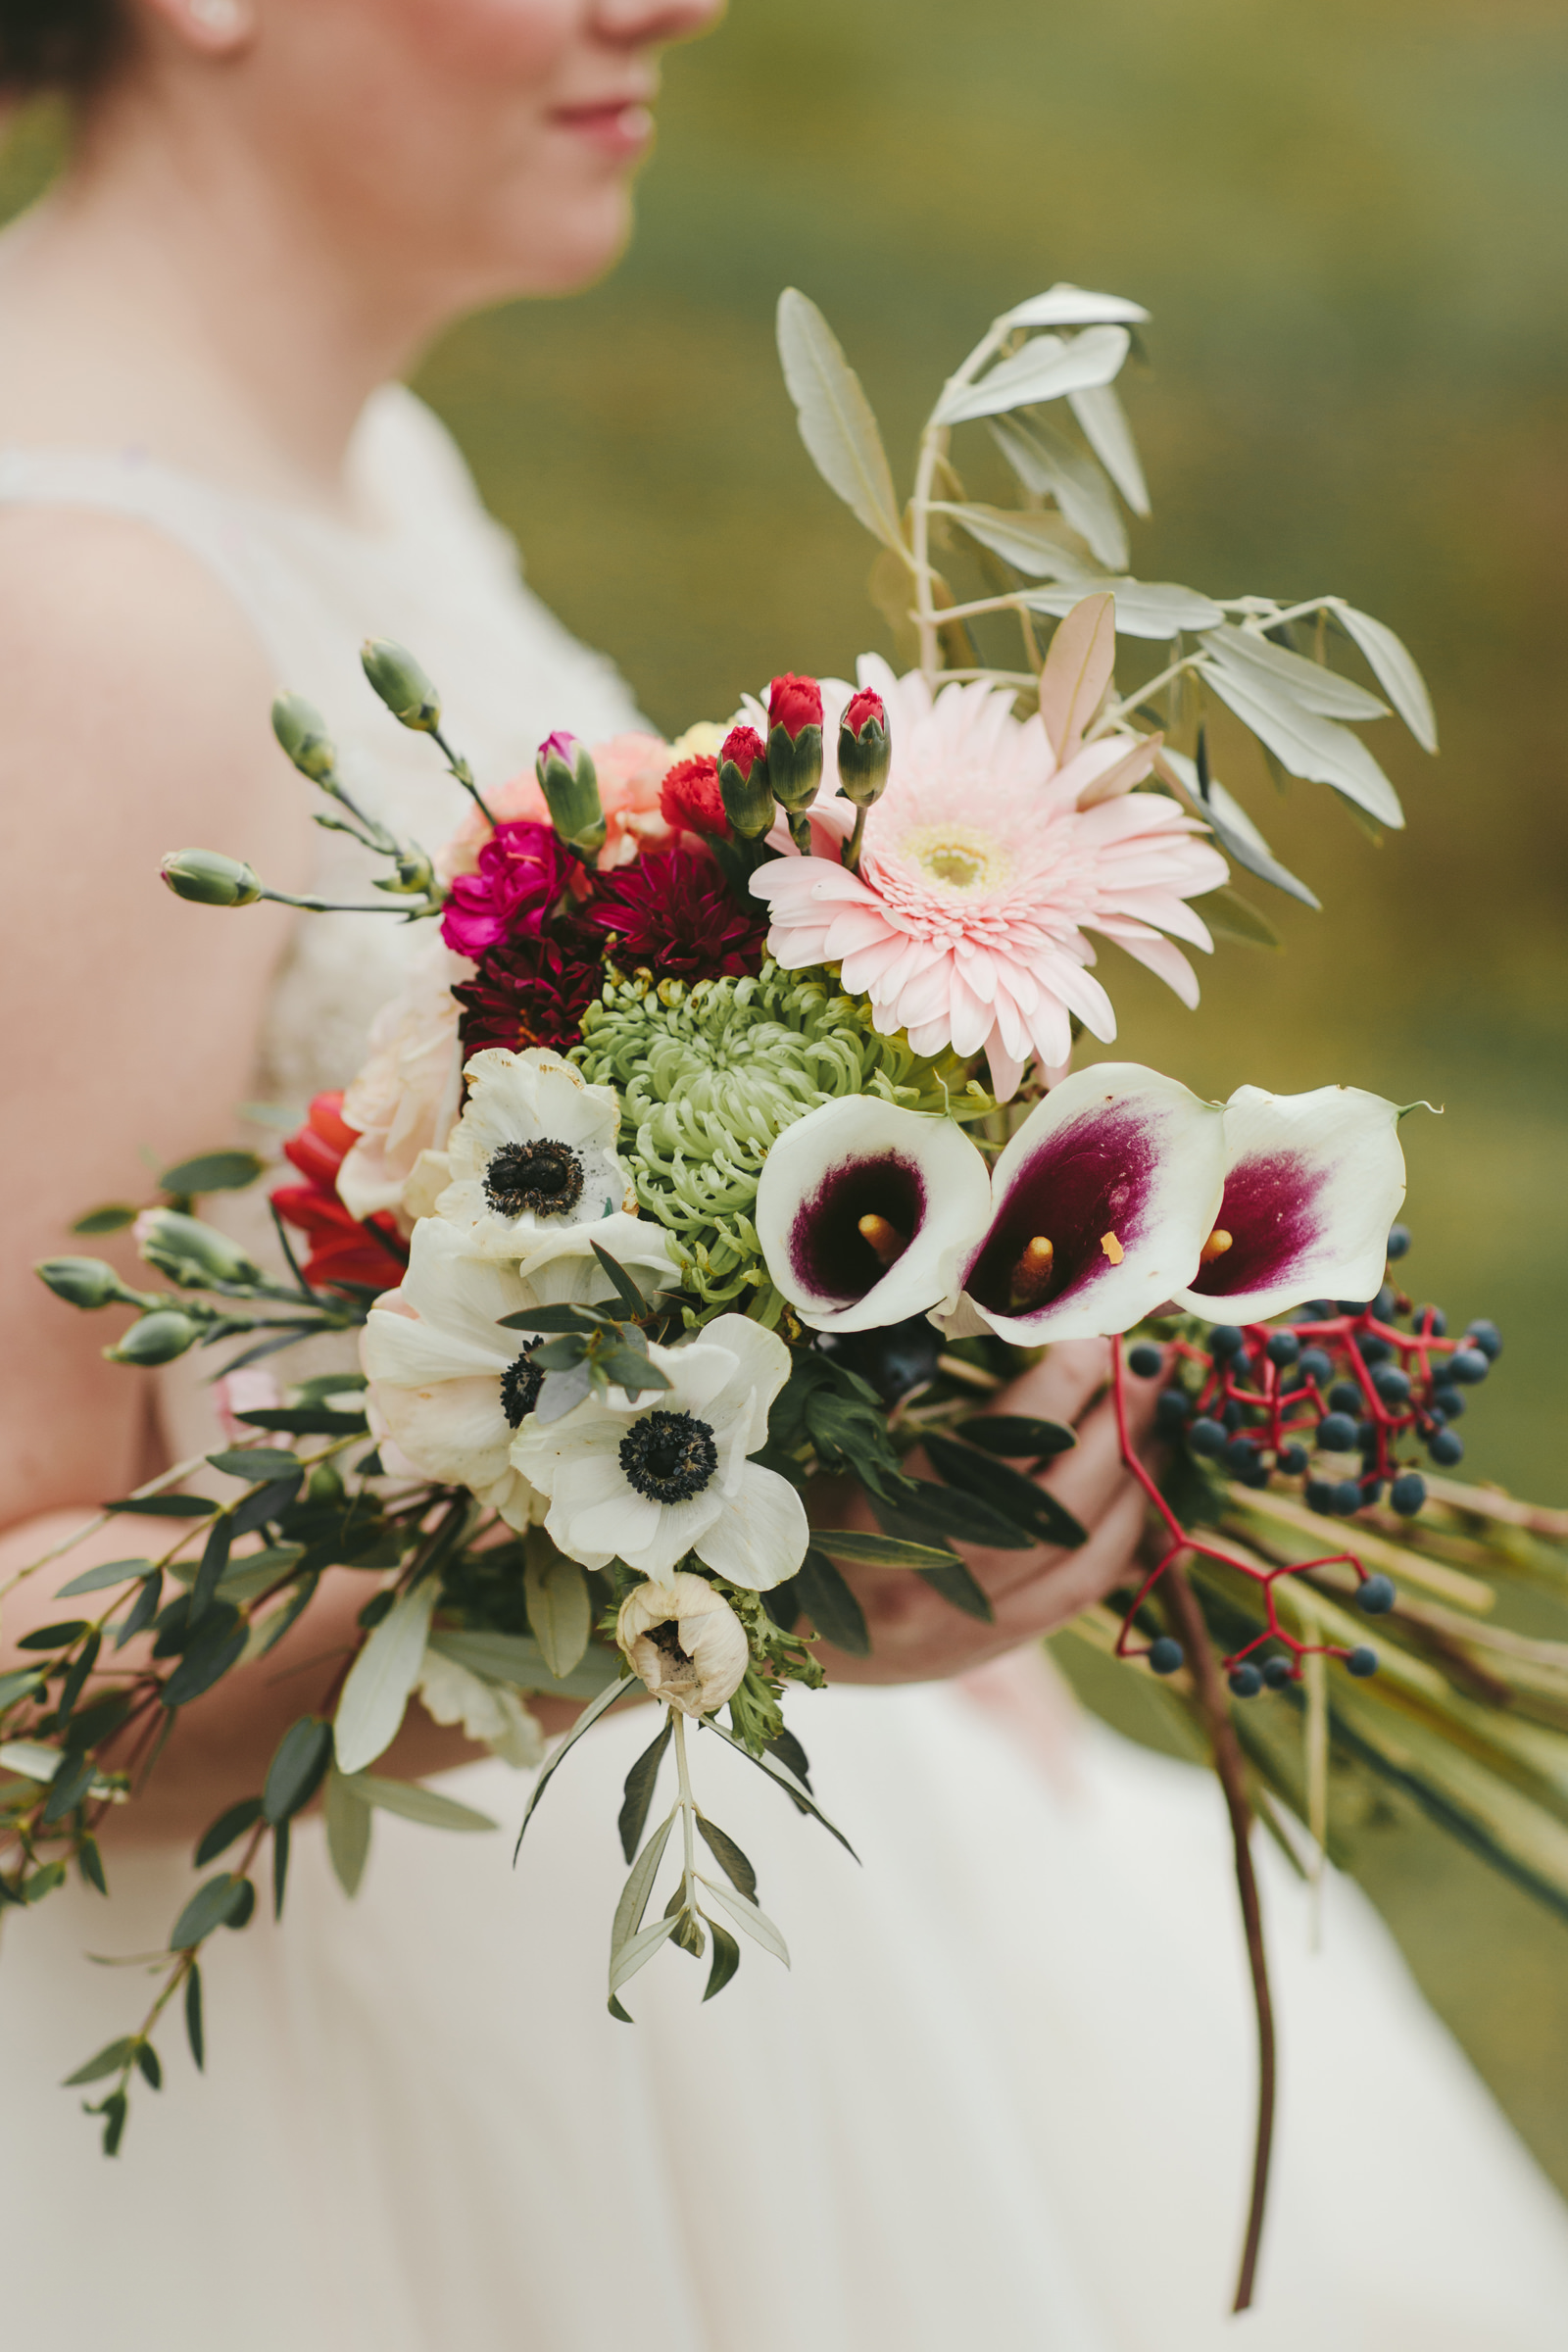 Bride with bouquet - photo by Melia Lucida